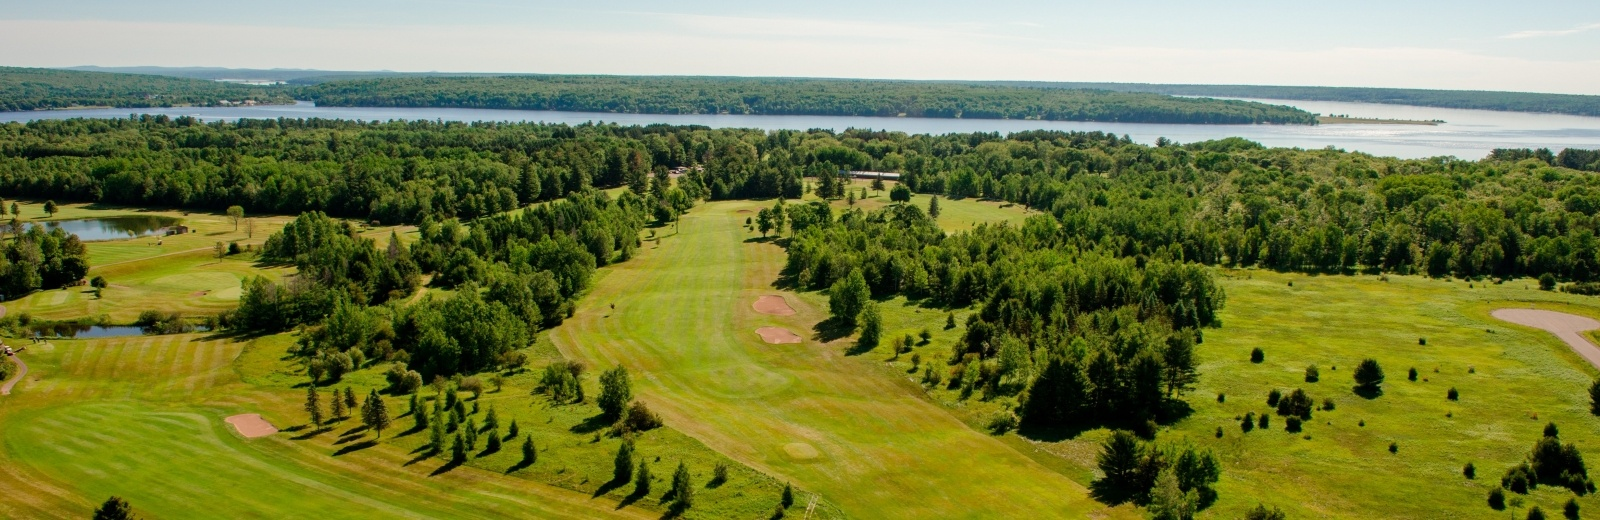 Aerial view of the Portage Lake Golf Course.